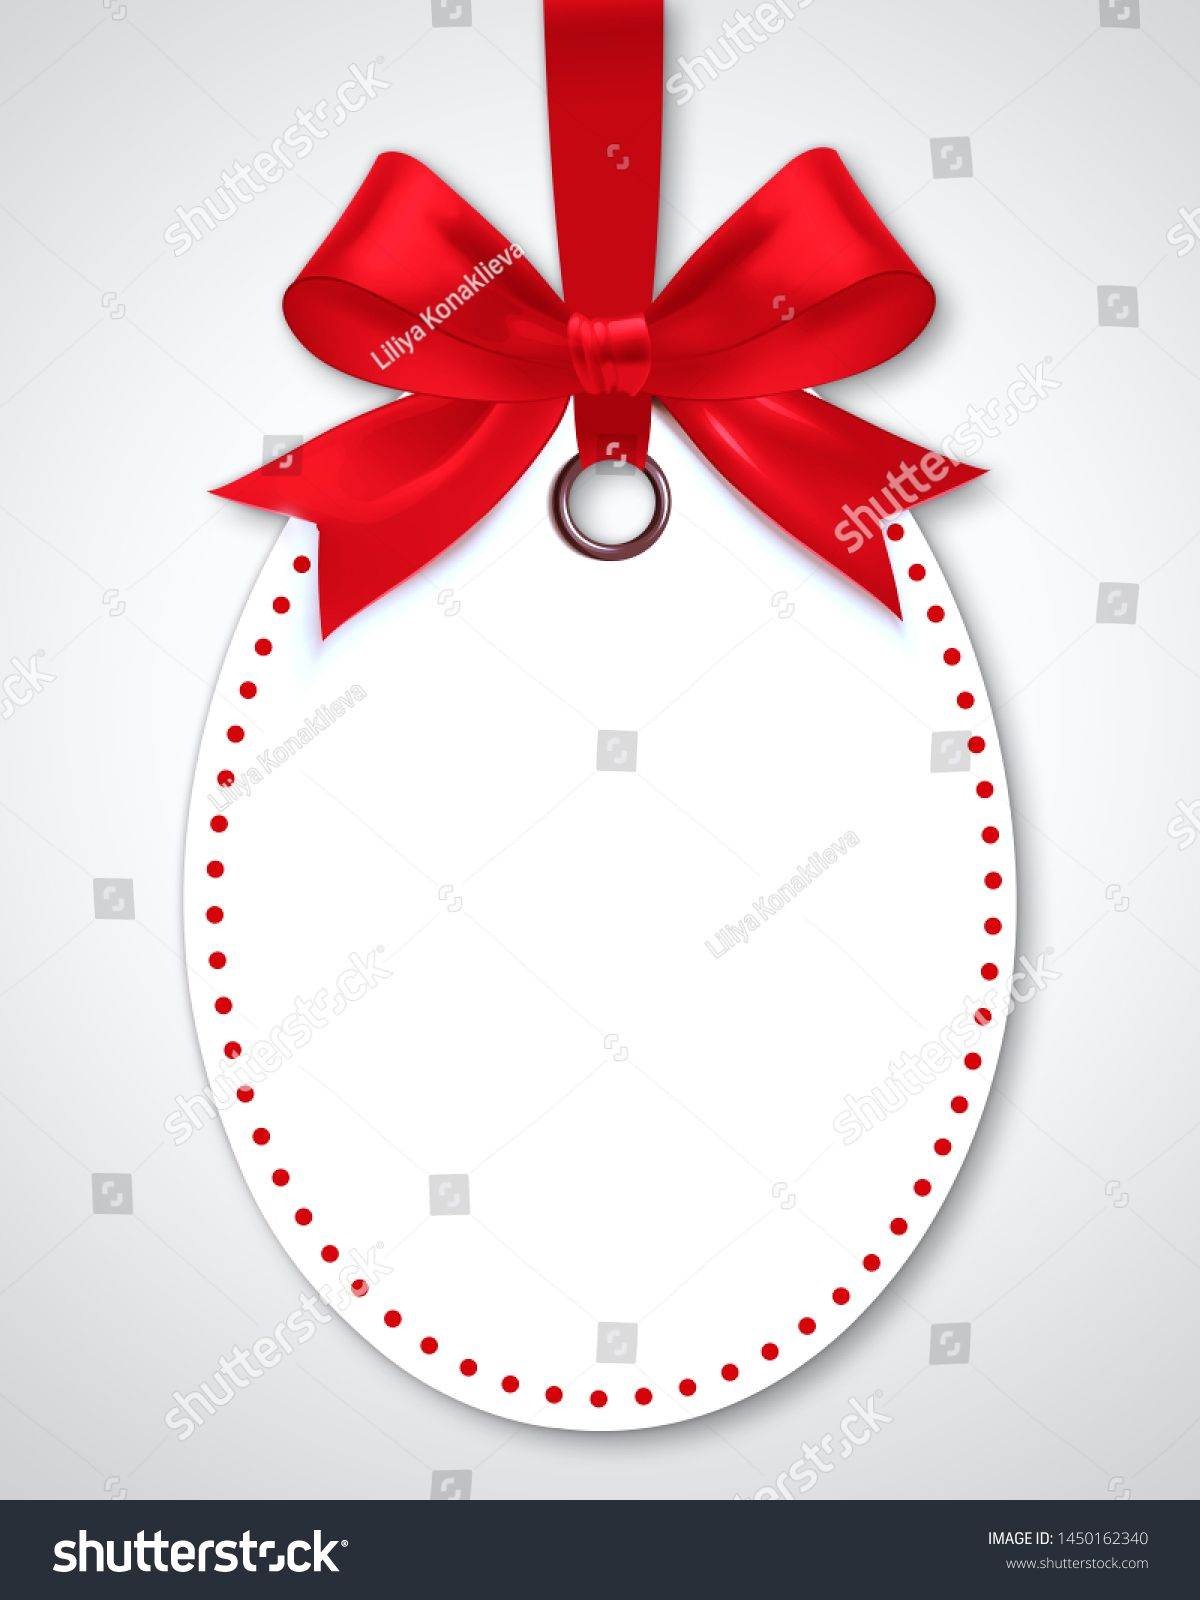 Decorative discount tag with red ribbon